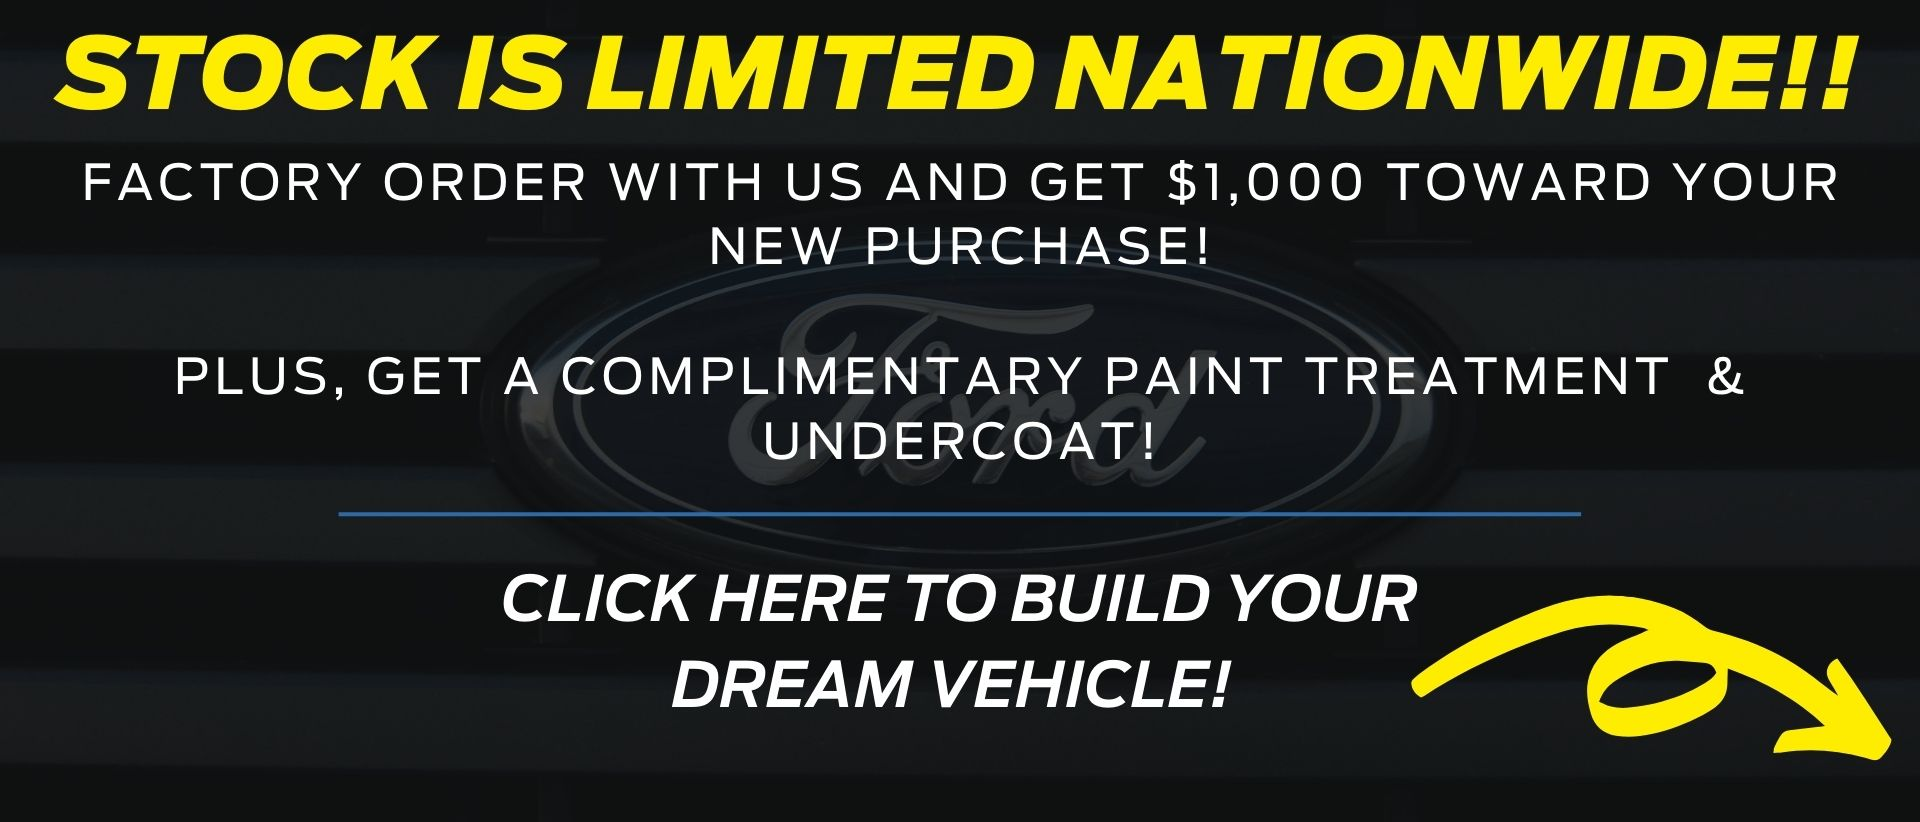 Copy Of Looking For Your Dream Vehicle (1)